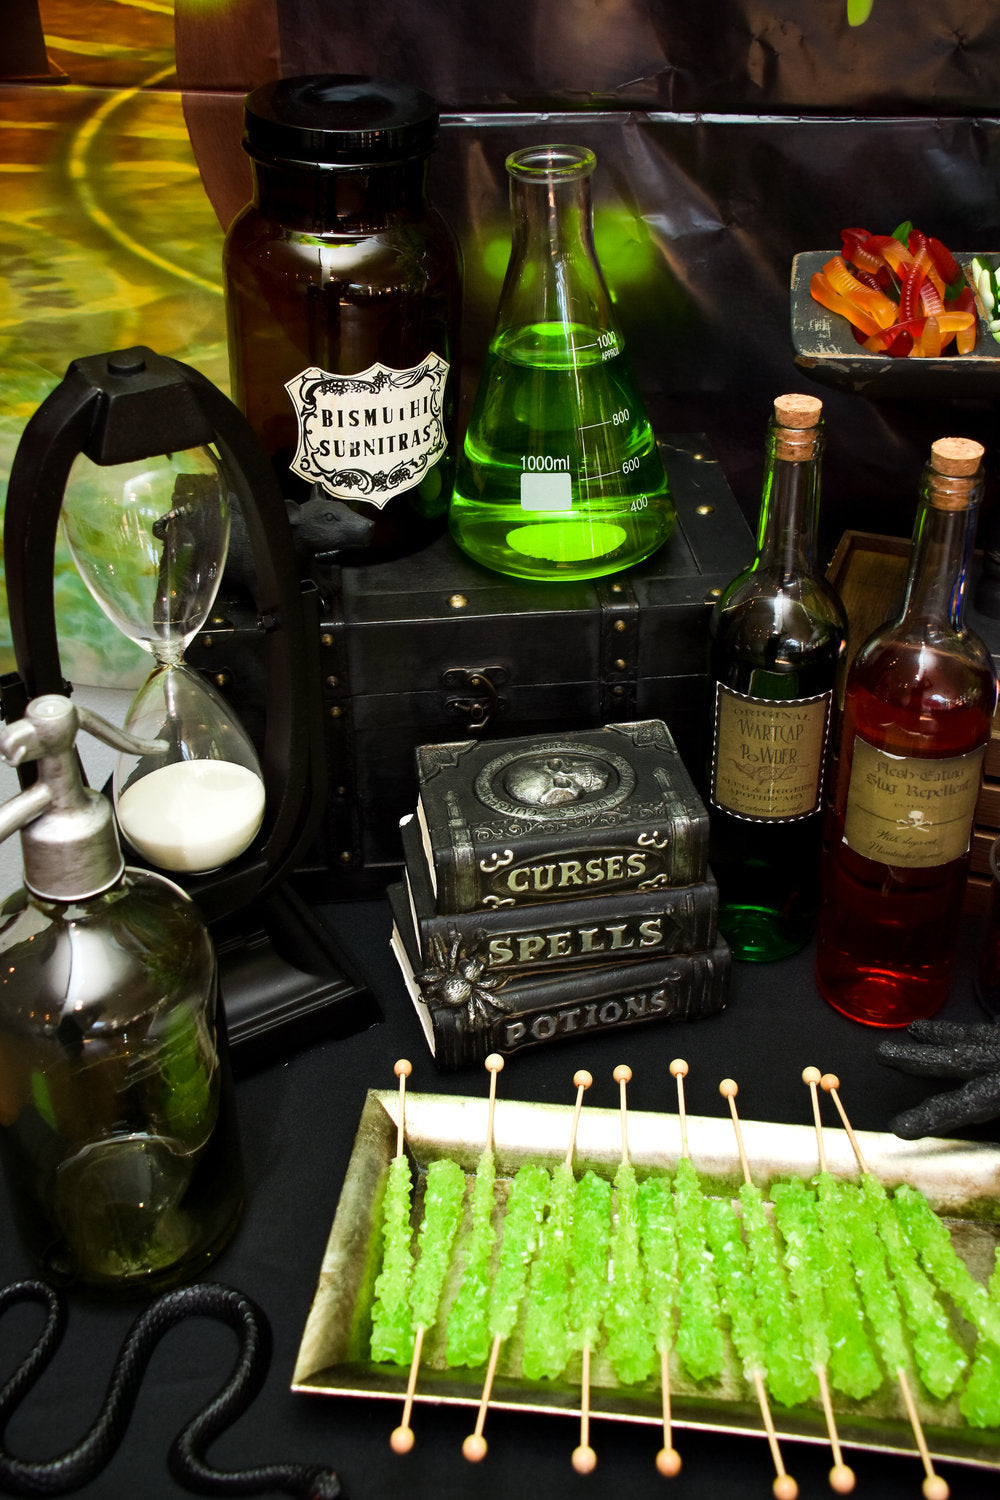 Closeup photo of potions table with green rock candy lollipops and spellbooks